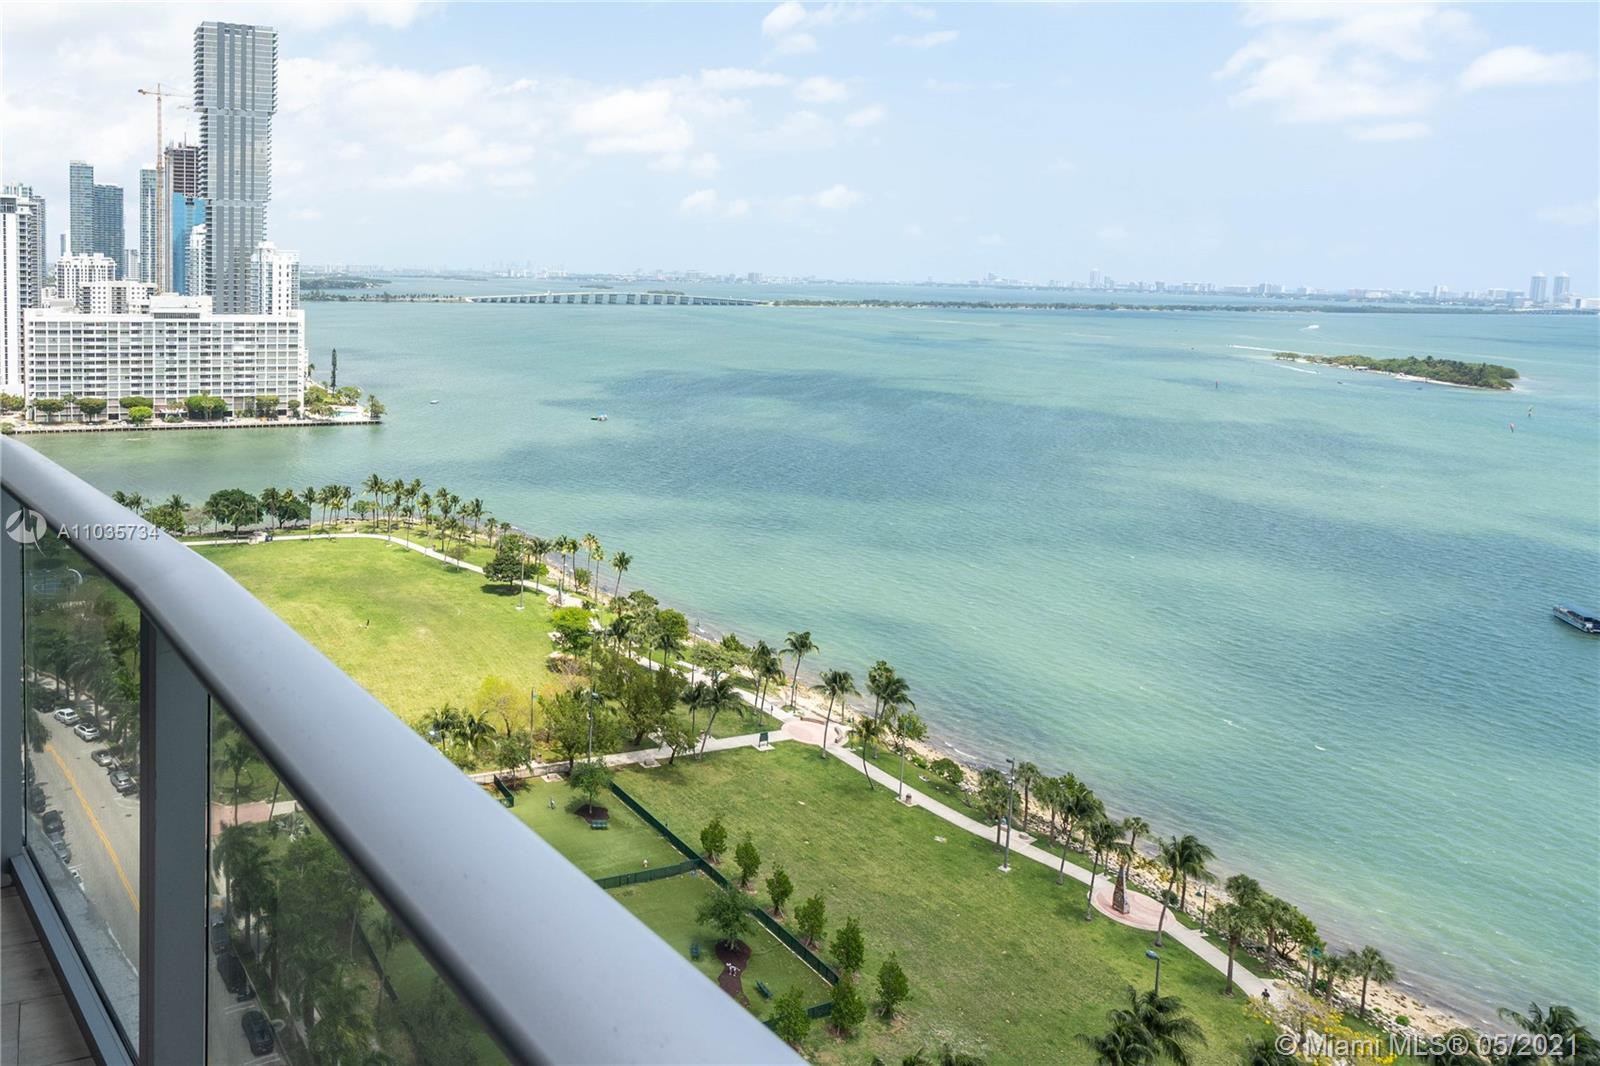 A rare opportunity to own 2 side-by-side 3Bed/4Bath+Den residences easily convertible into a 6Bed/8B